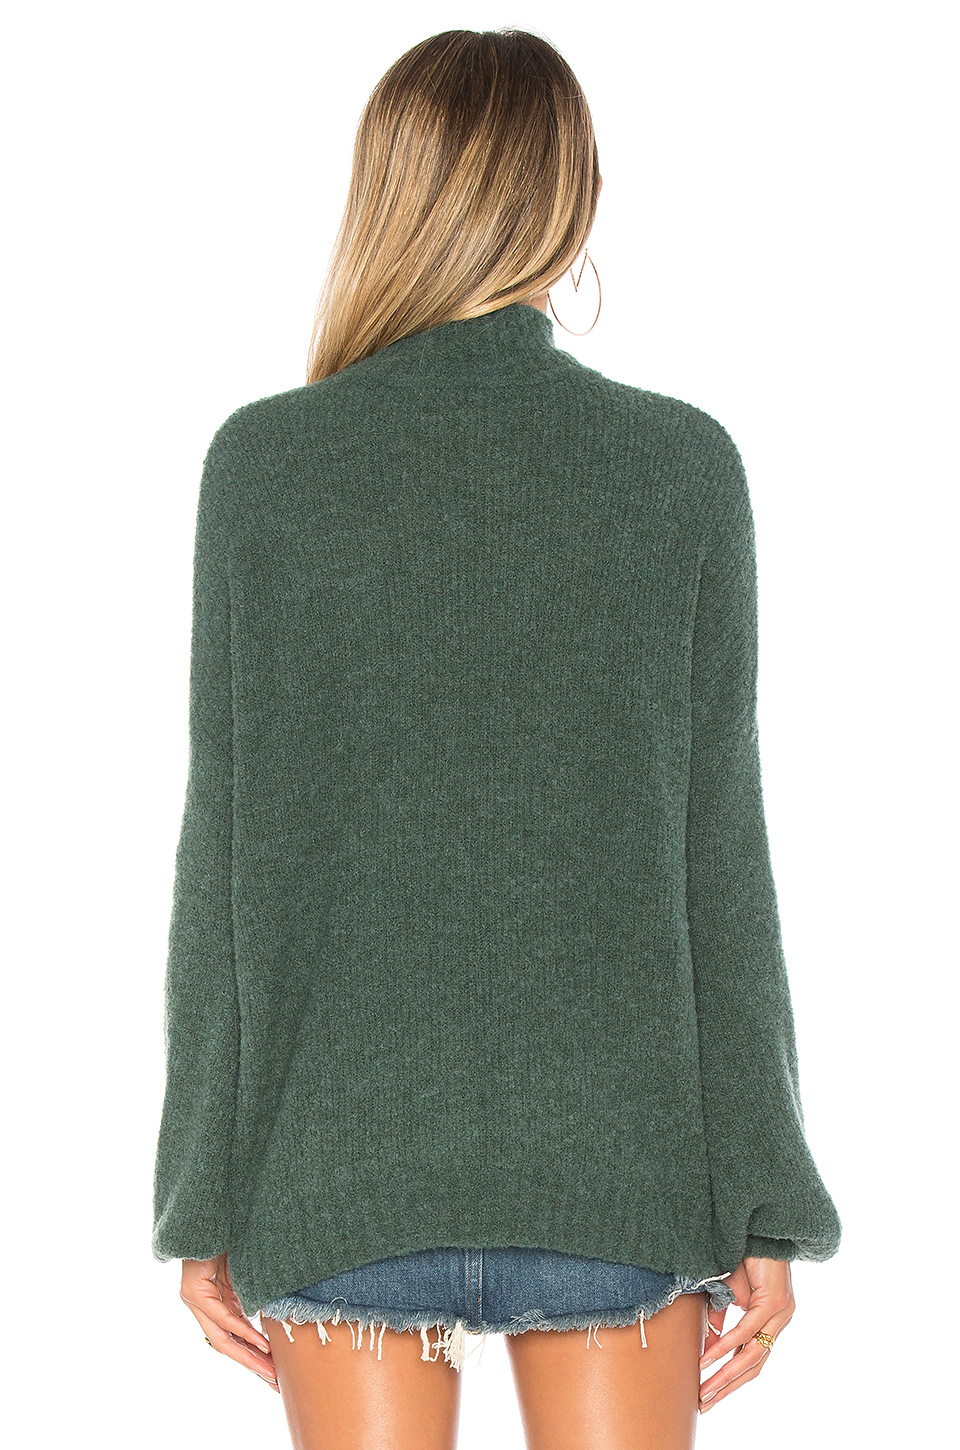 Lovers + Friends Independent Sweater in Evergreen